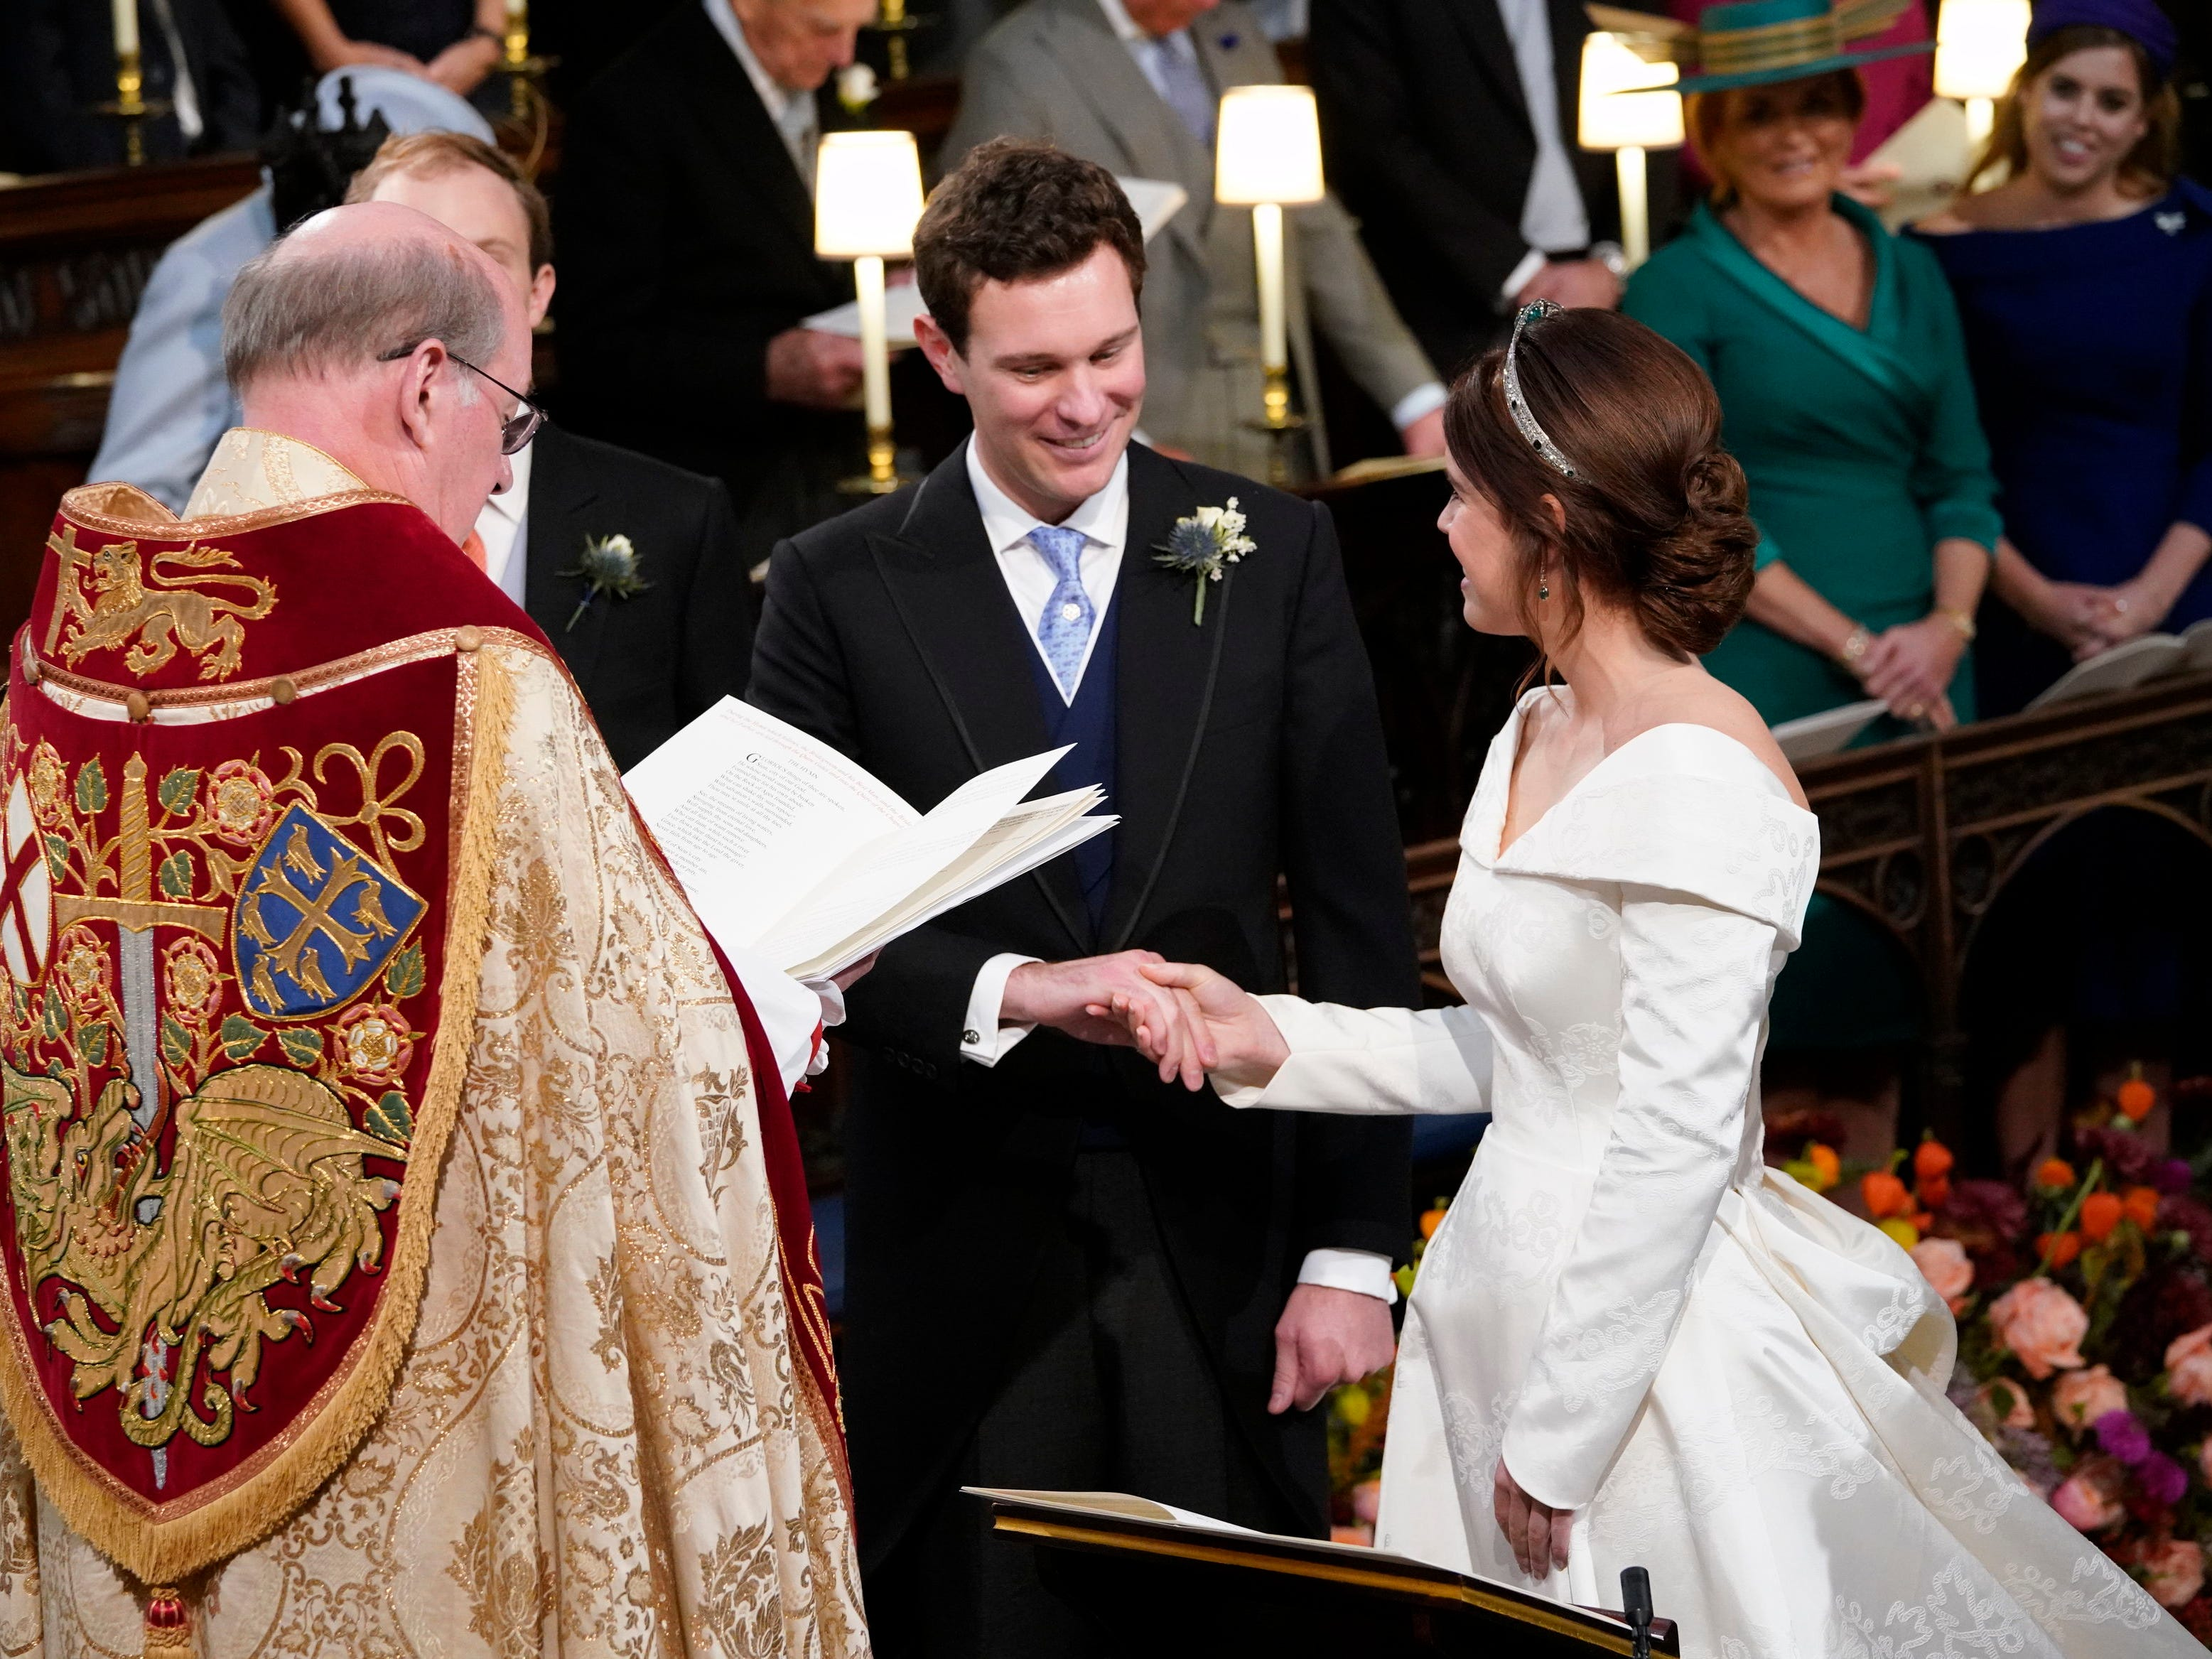 WINDSOR, ENGLAND - OCTOBER 12: Princess Eugenie and Jack Brooksbank during their  wedding ceremony at St George's Chapel in Windsor Castle on October 12, 2018 in Windsor, England. (Photo by Danny Lawson - WPA Pool/Getty Images) ORG XMIT: 775239781 ORIG FILE ID: 1051952288